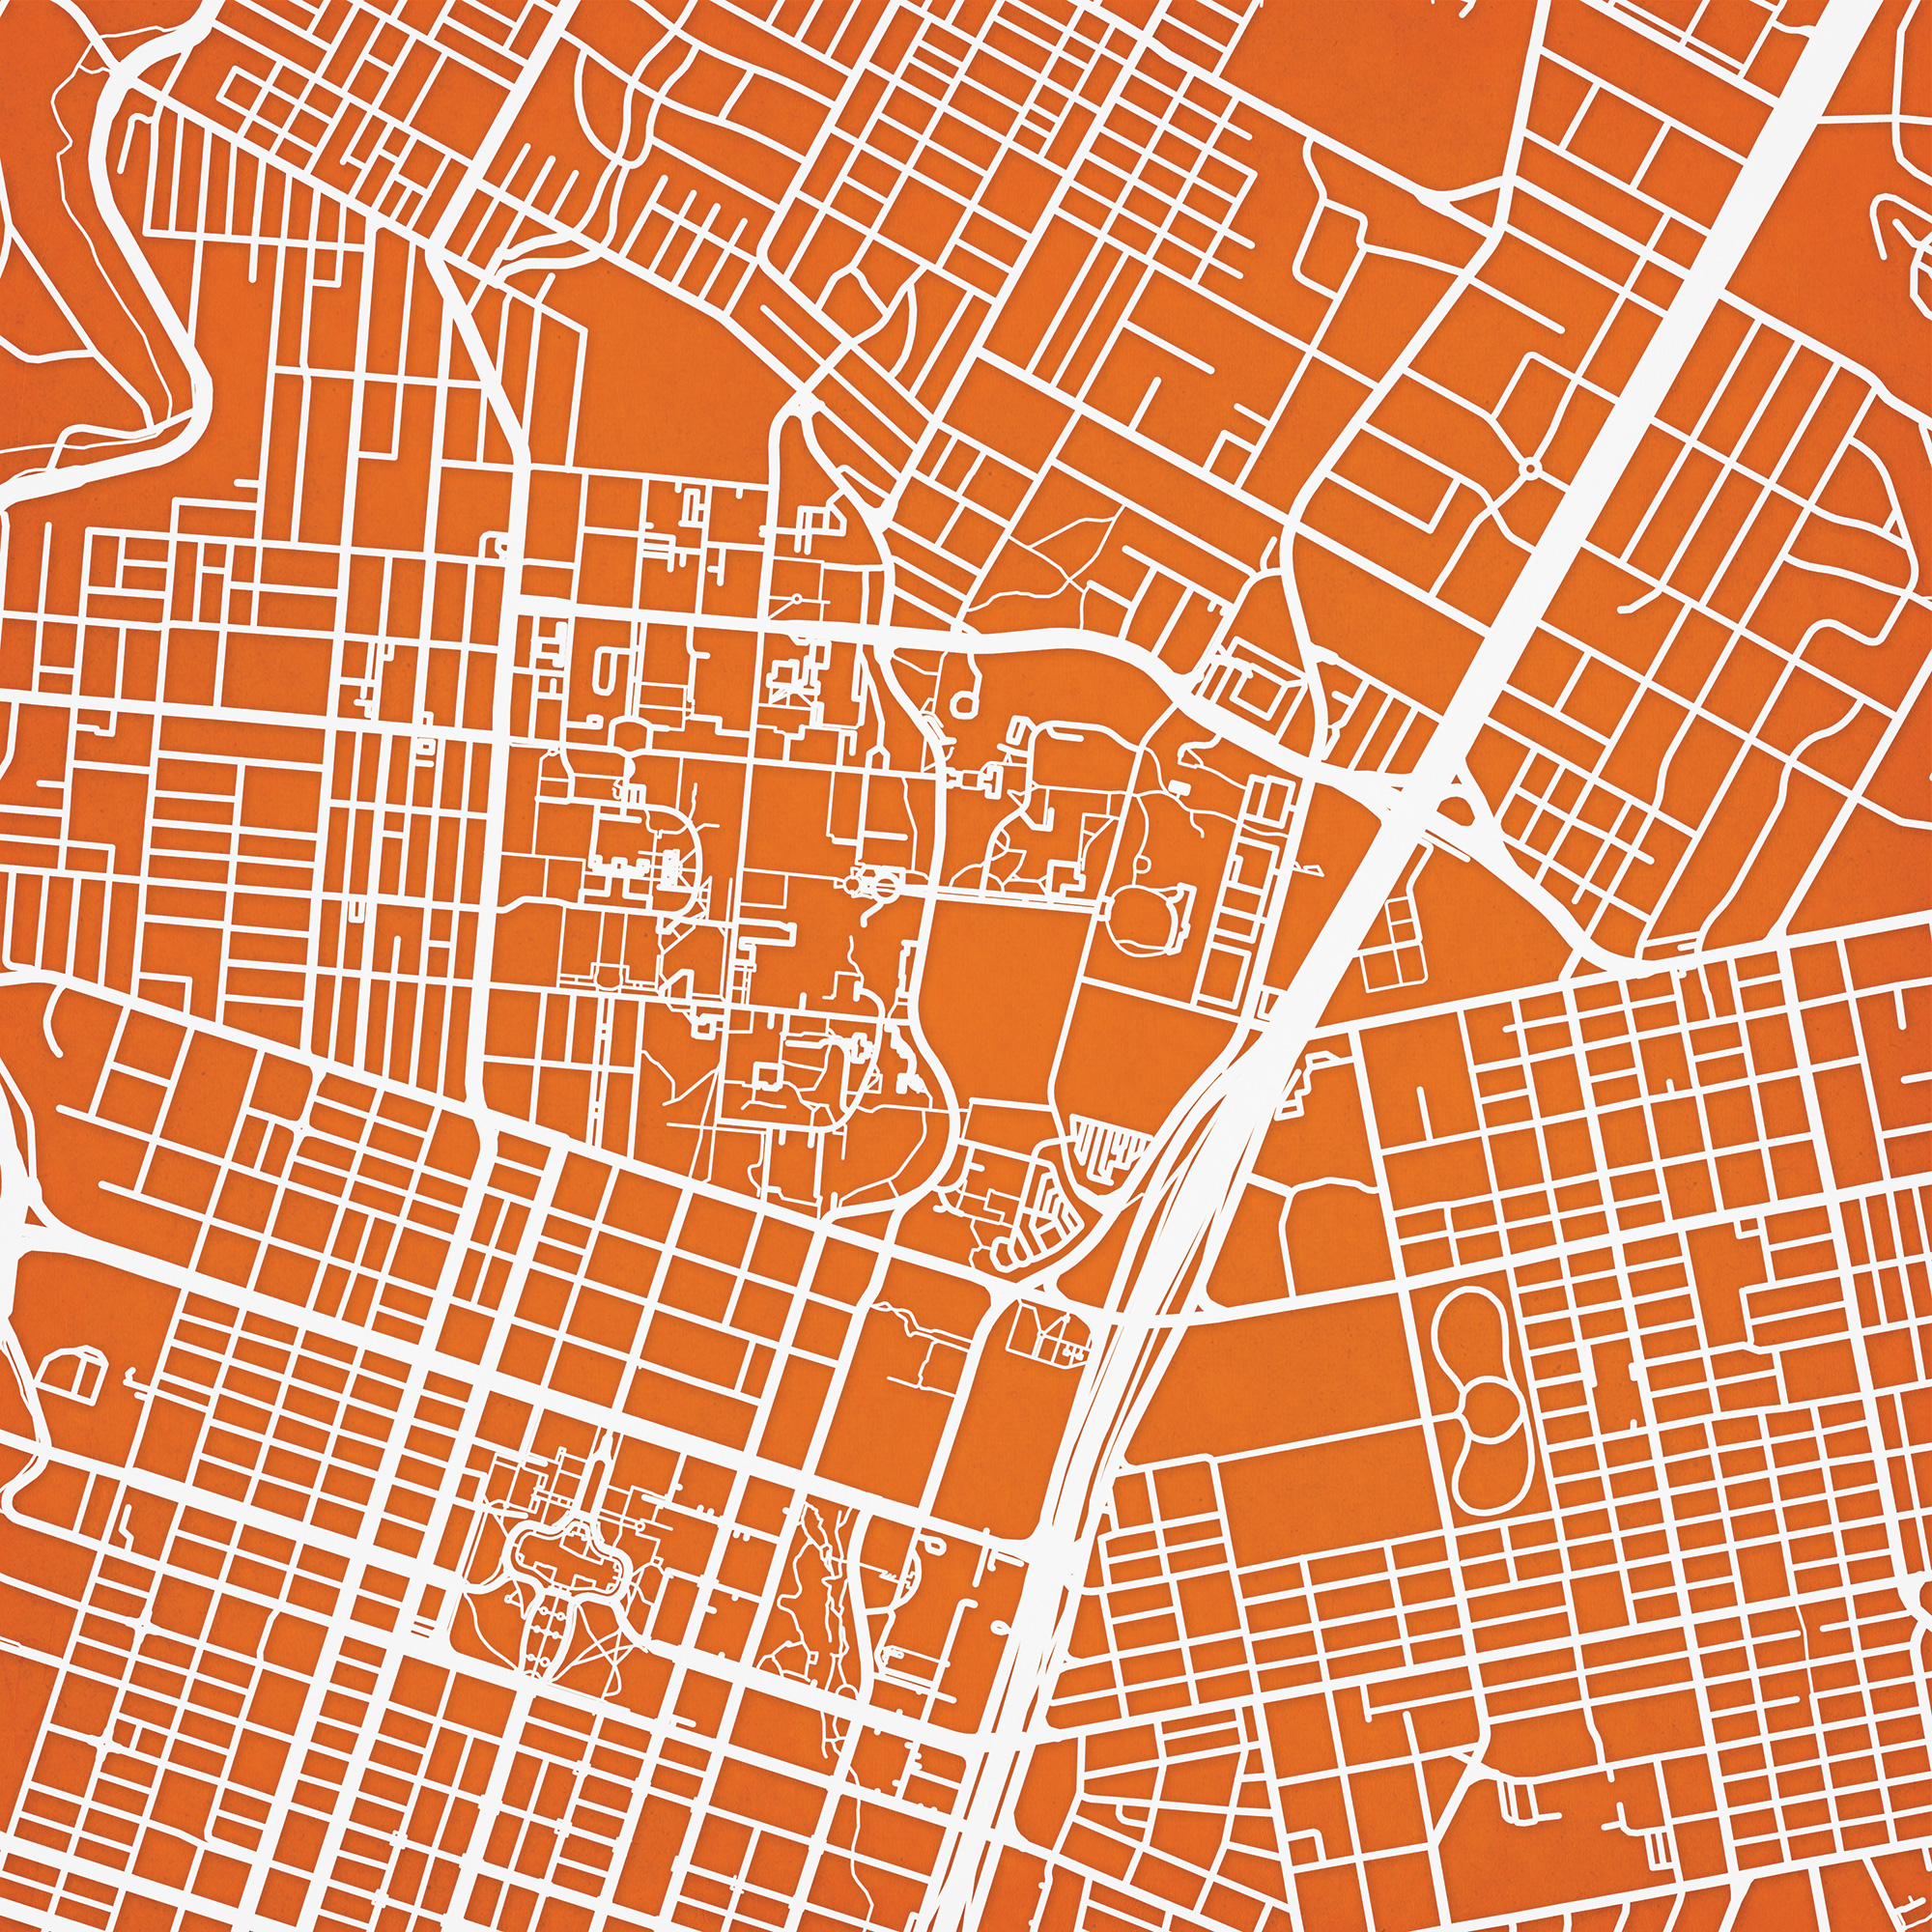 University Of Texas At Austin Campus Map Art - The Map Shop - Map Of Texas Art